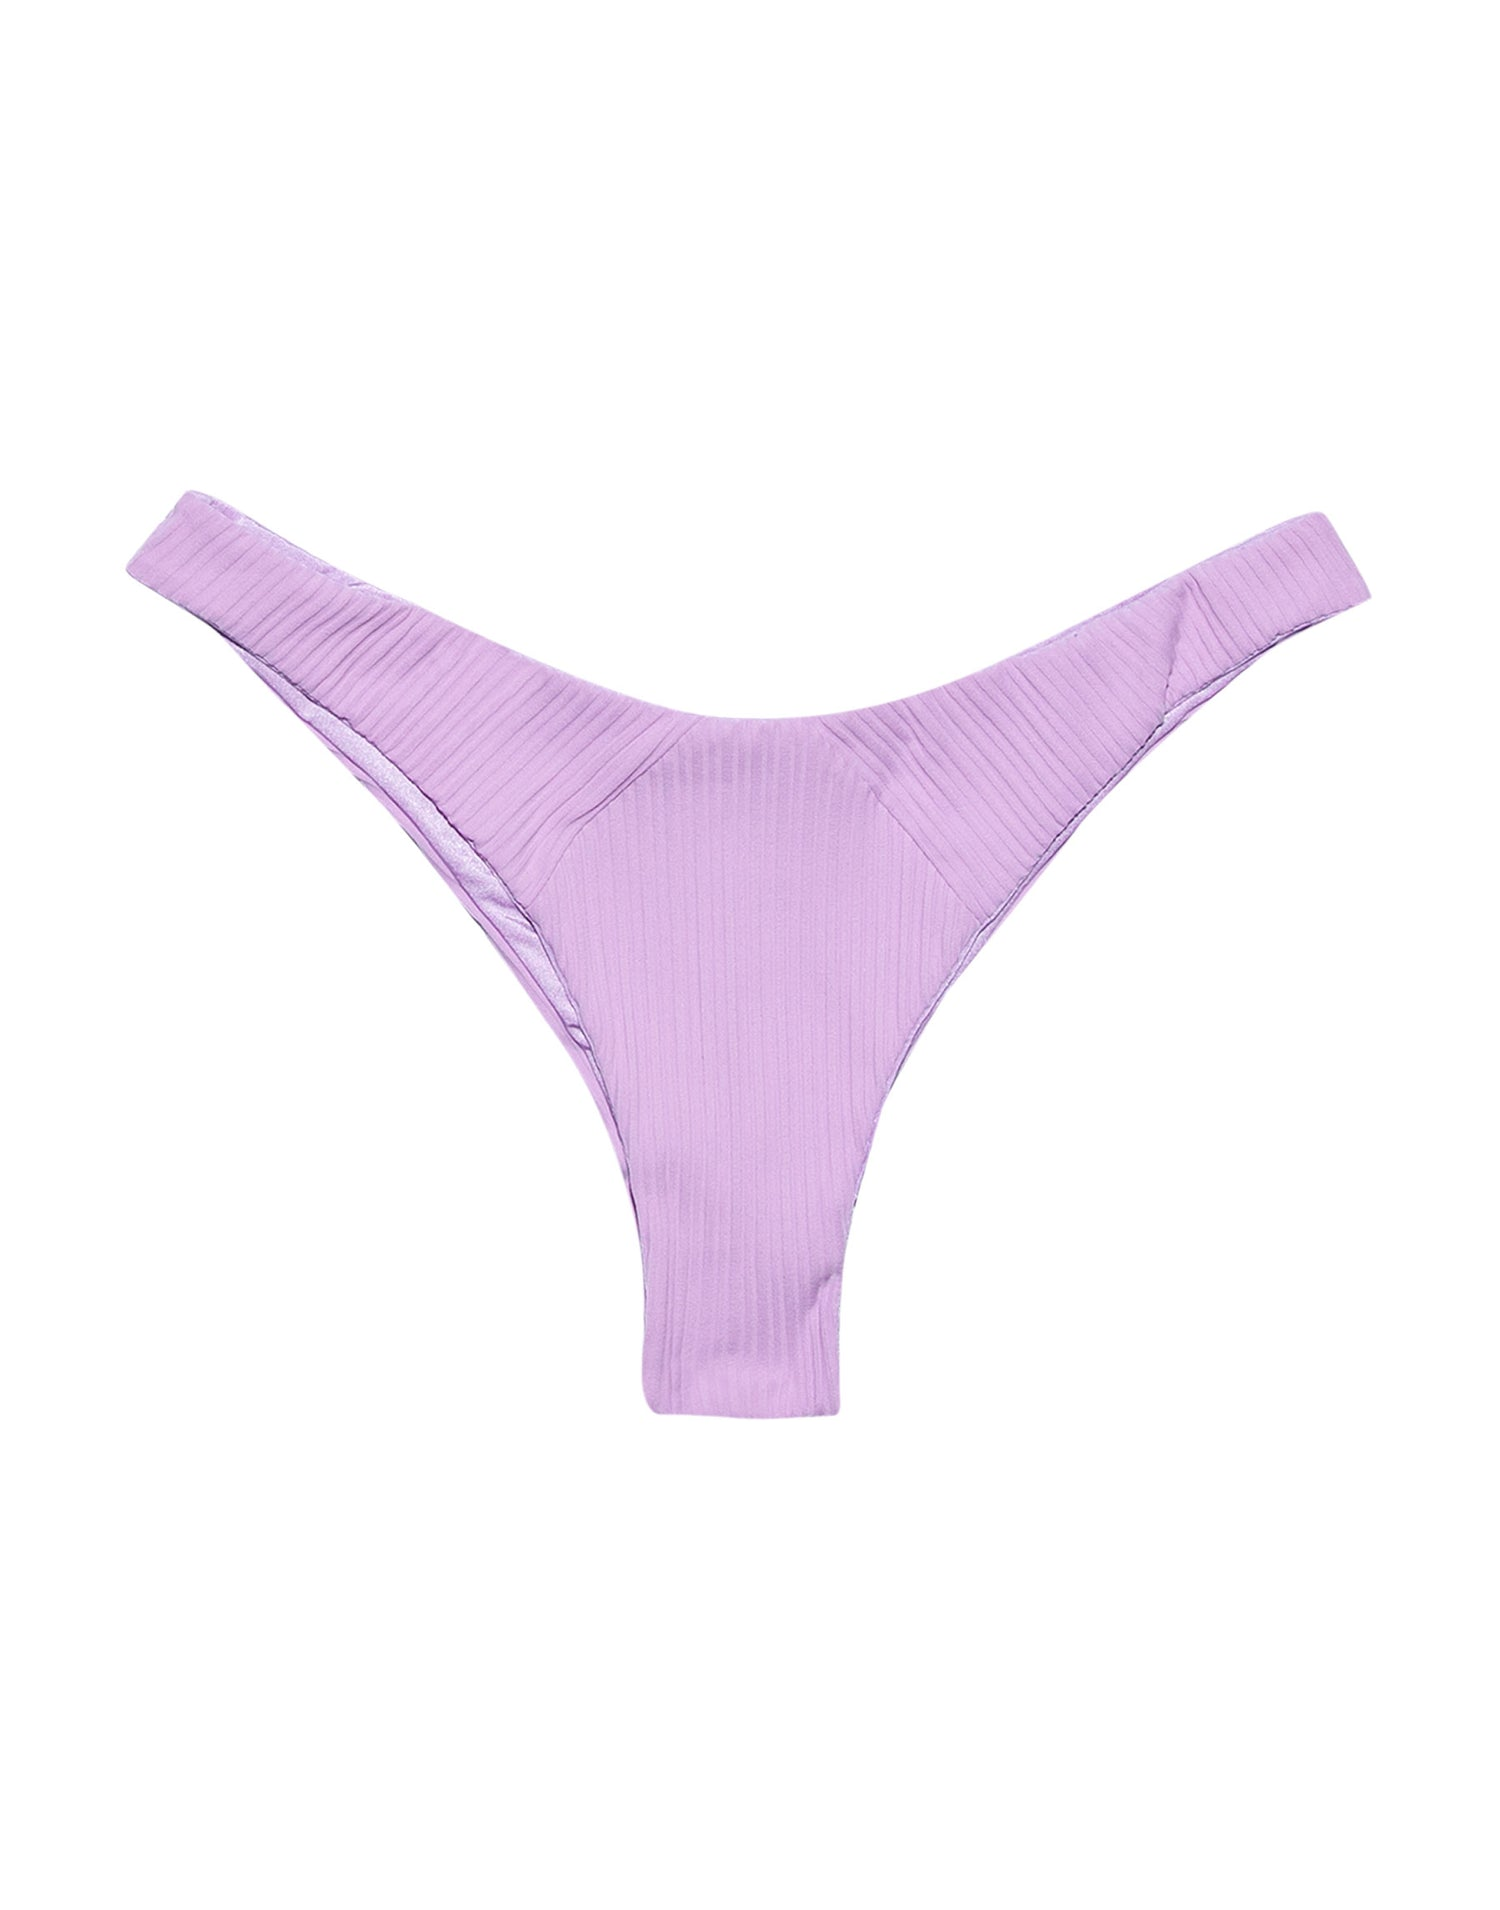 Sydney Brazilian Bikini Bottom in Lavender Rib - product view